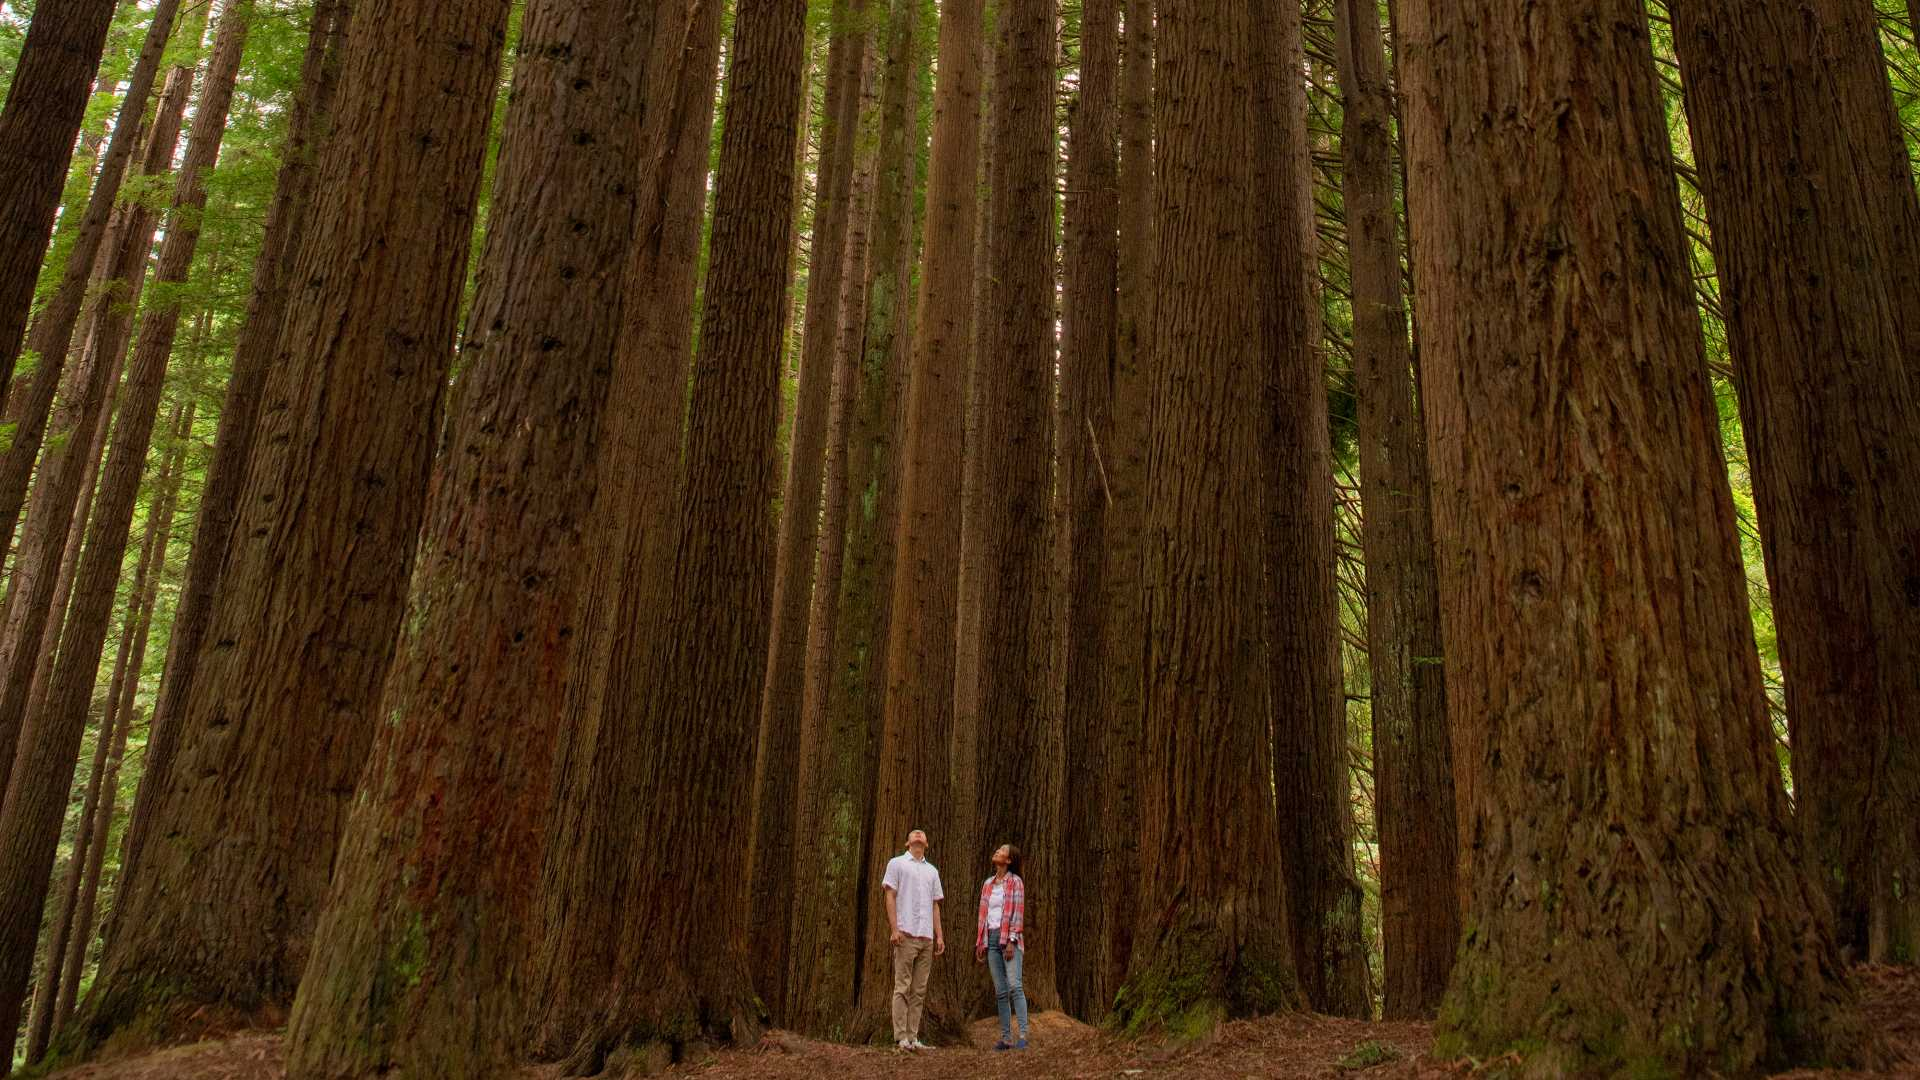 Eight Unexpected Natural Wonders to Visit Around Victoria